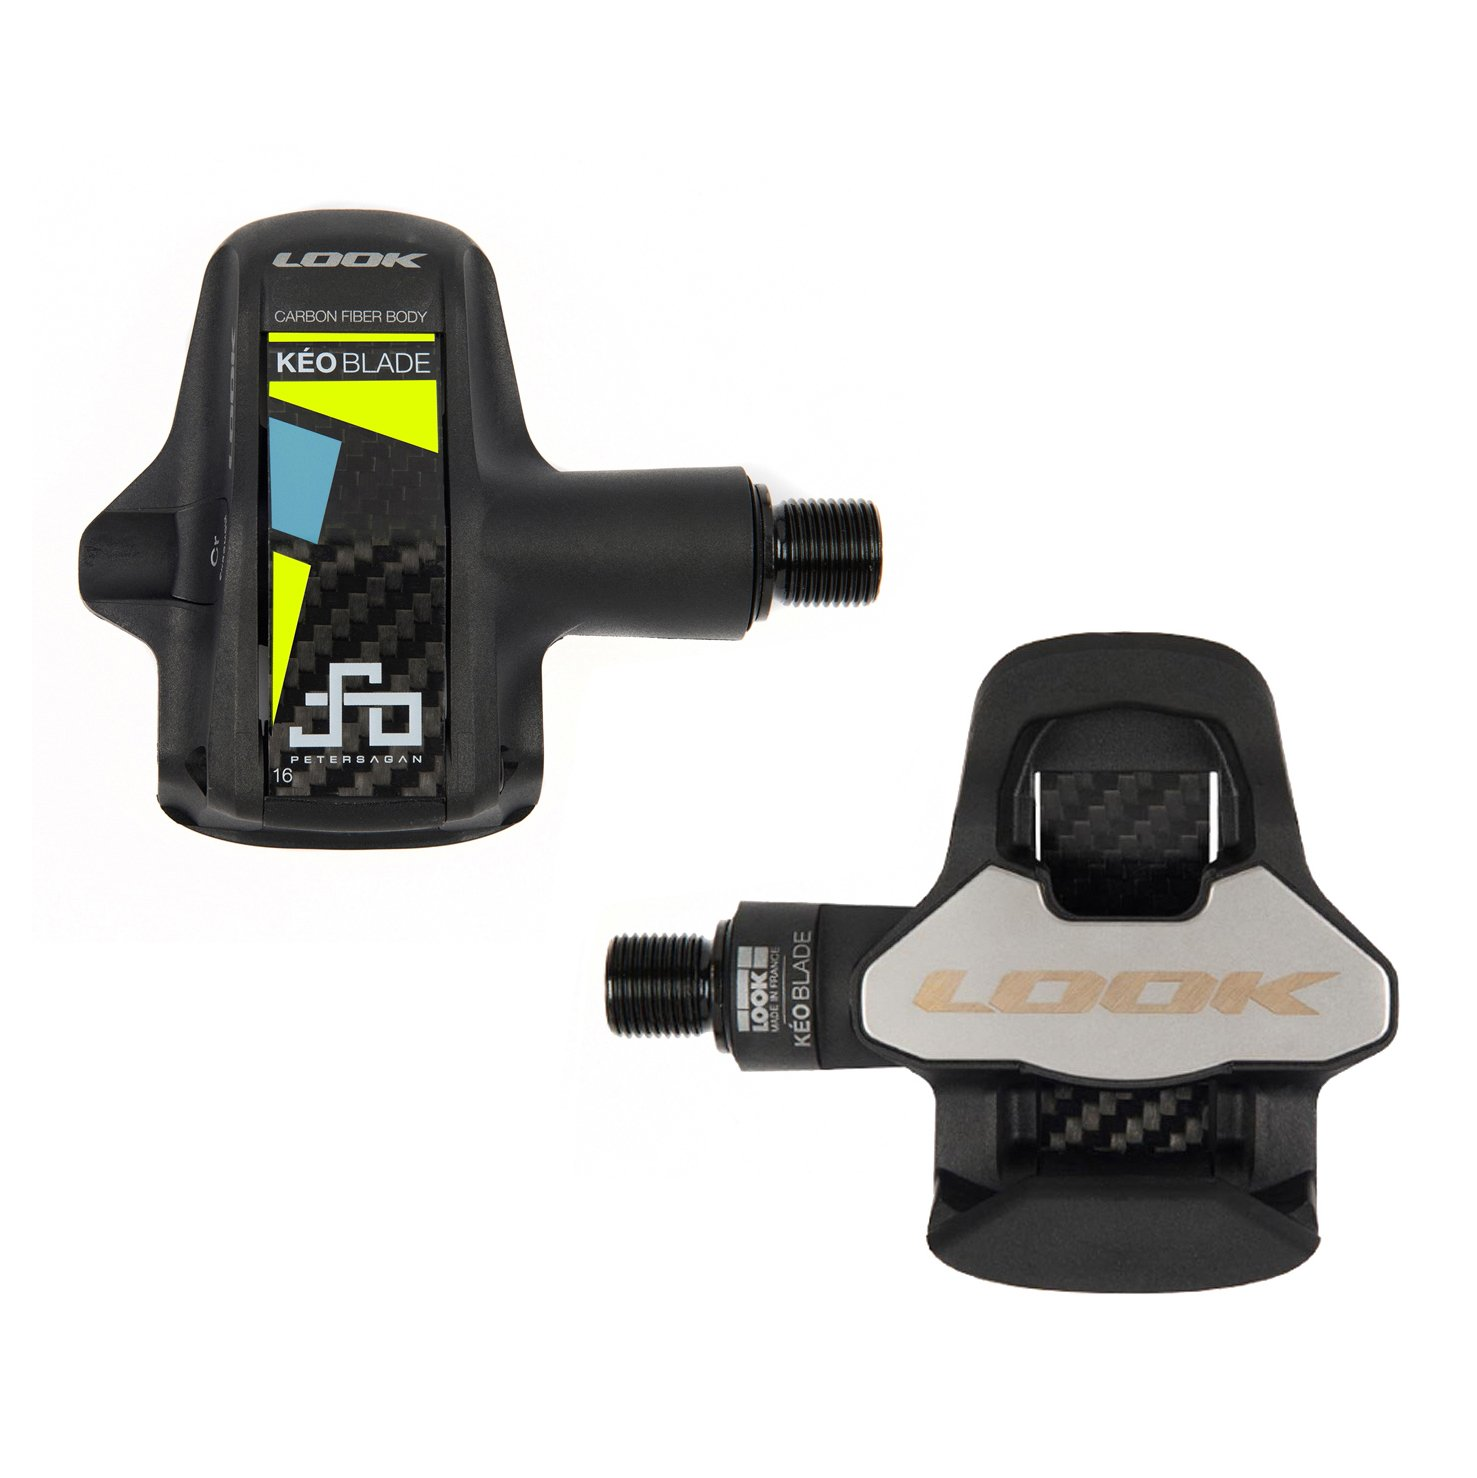 LOOK(ルック) Keo Blade 2 Carbon CrMo Road Pedal Peter Sagan Signature Series [16Nm] [並行輸入品] B0792QQBHX